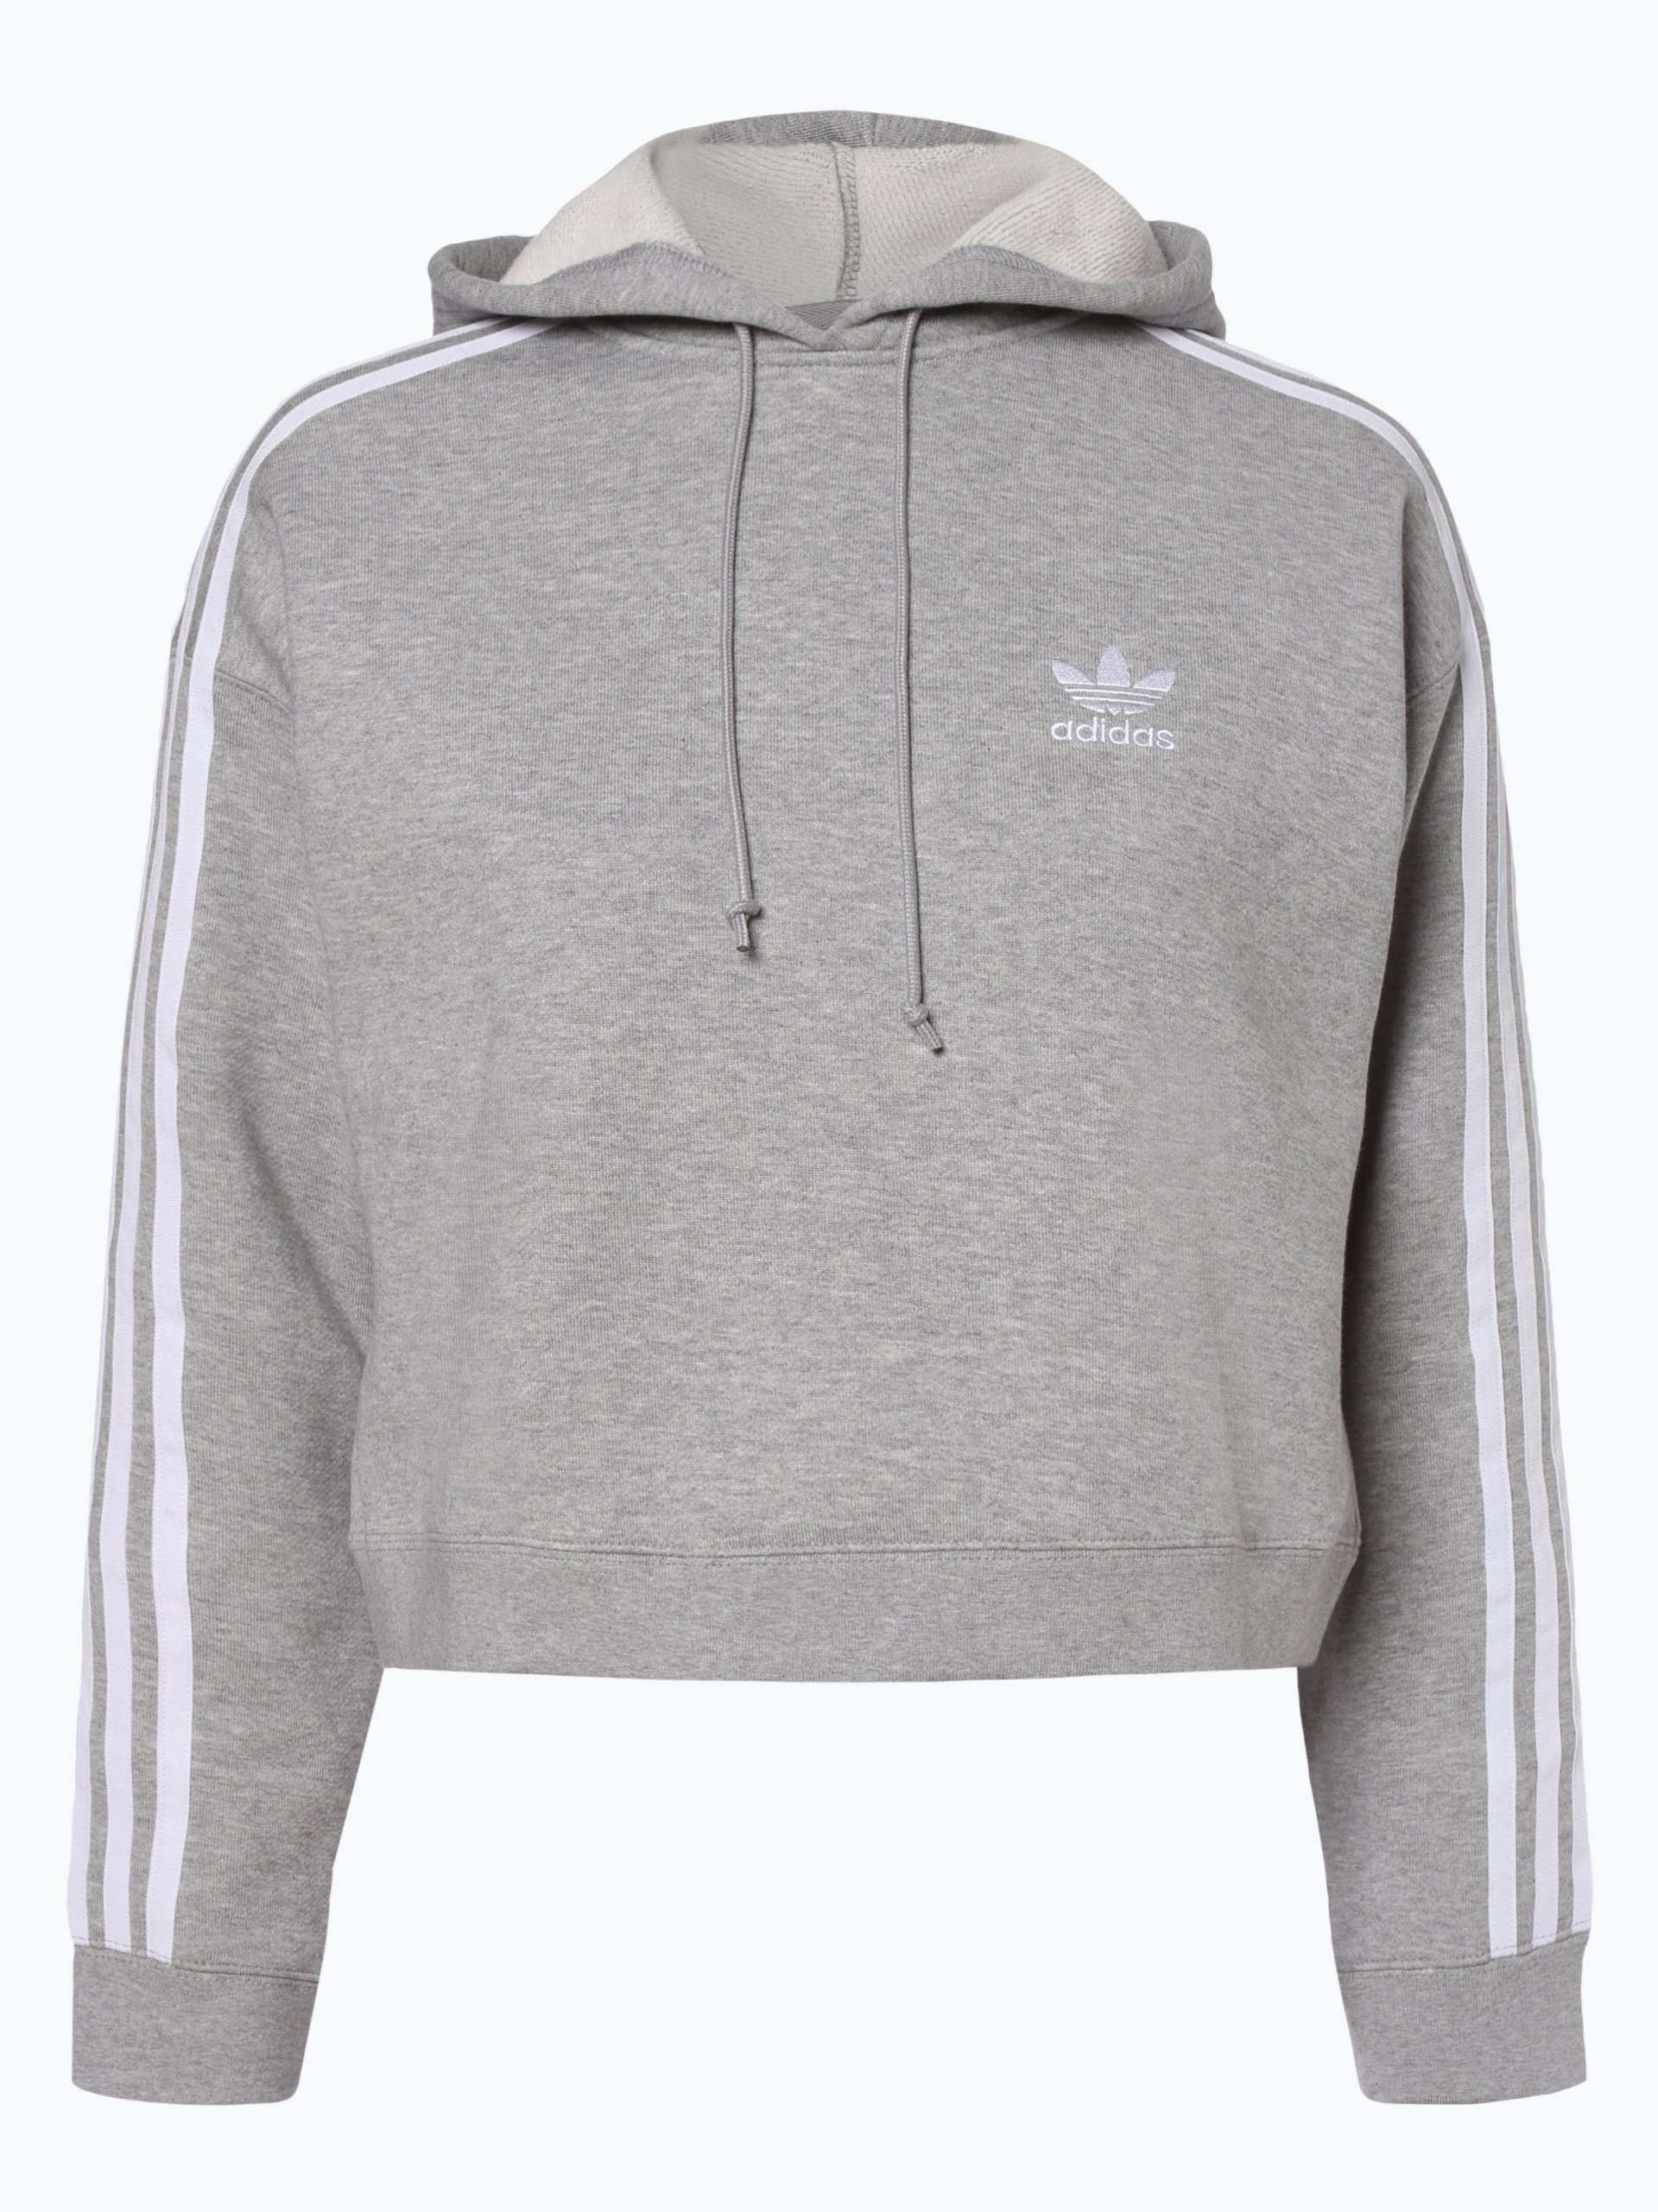 newest d6384 2bb83 adidas Originals Damen Sweatshirt online kaufen | PEEK-UND ...